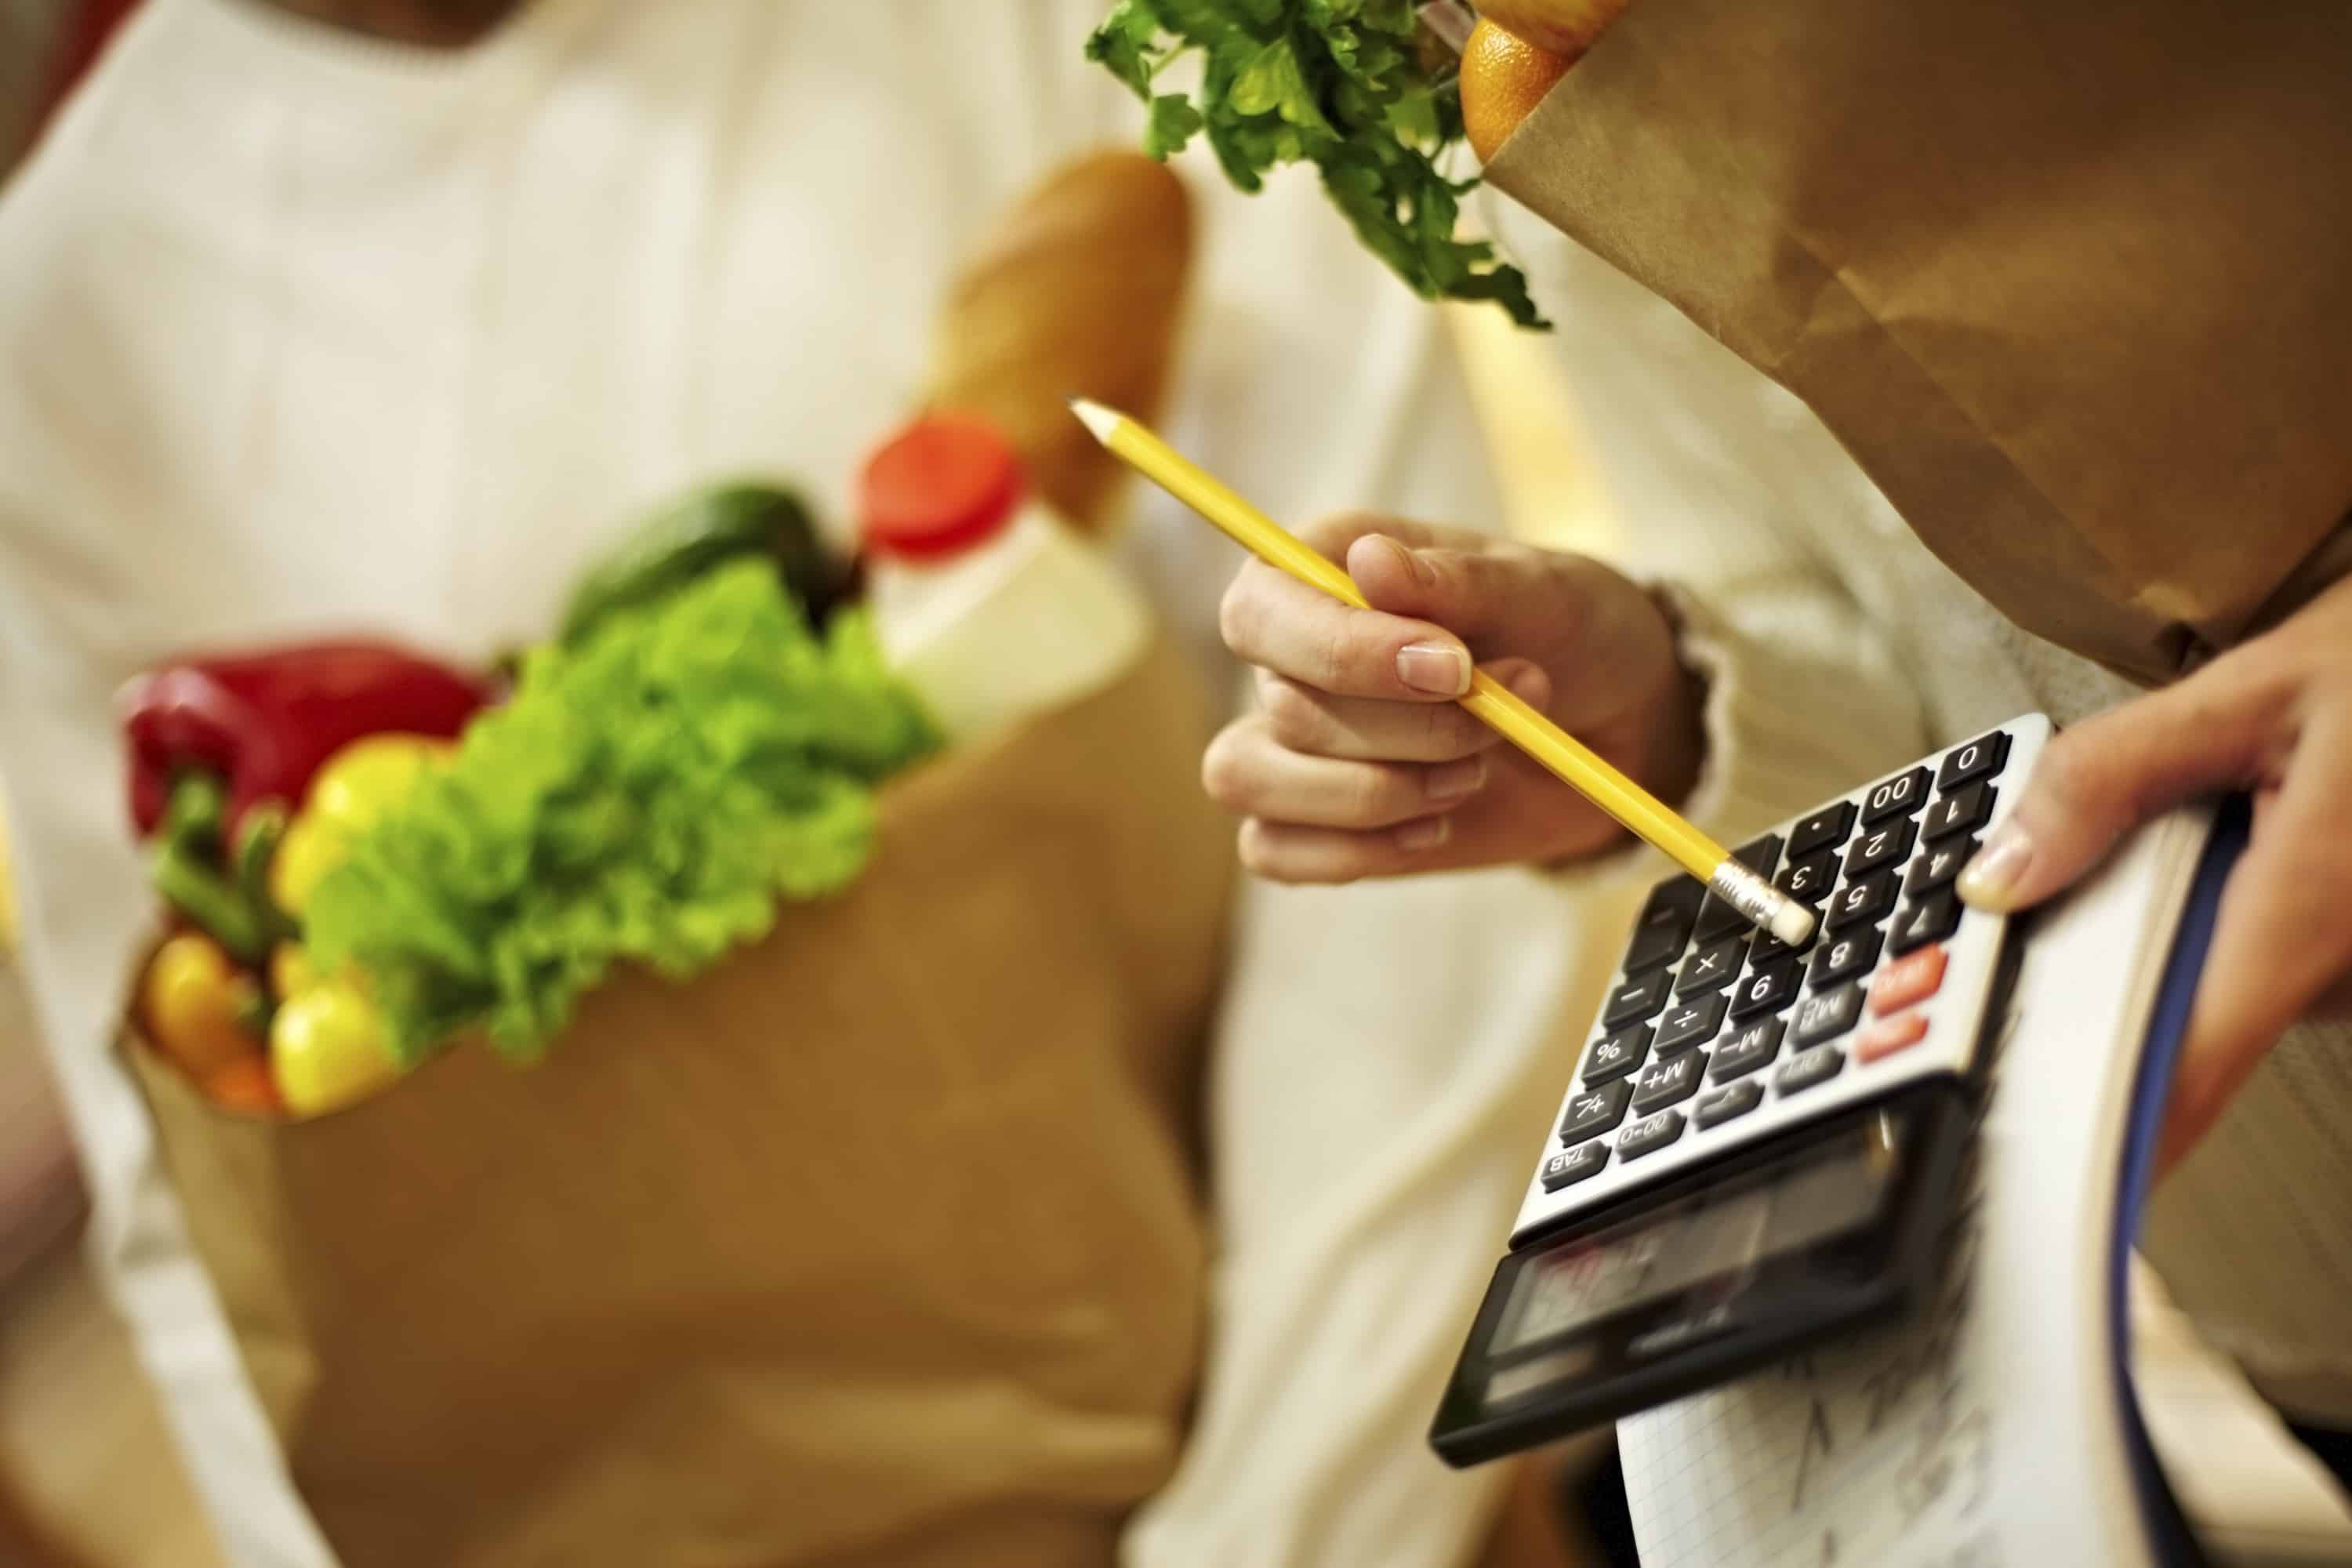 Woman counting expenses with calculator at supermarket, learning how to save money on food